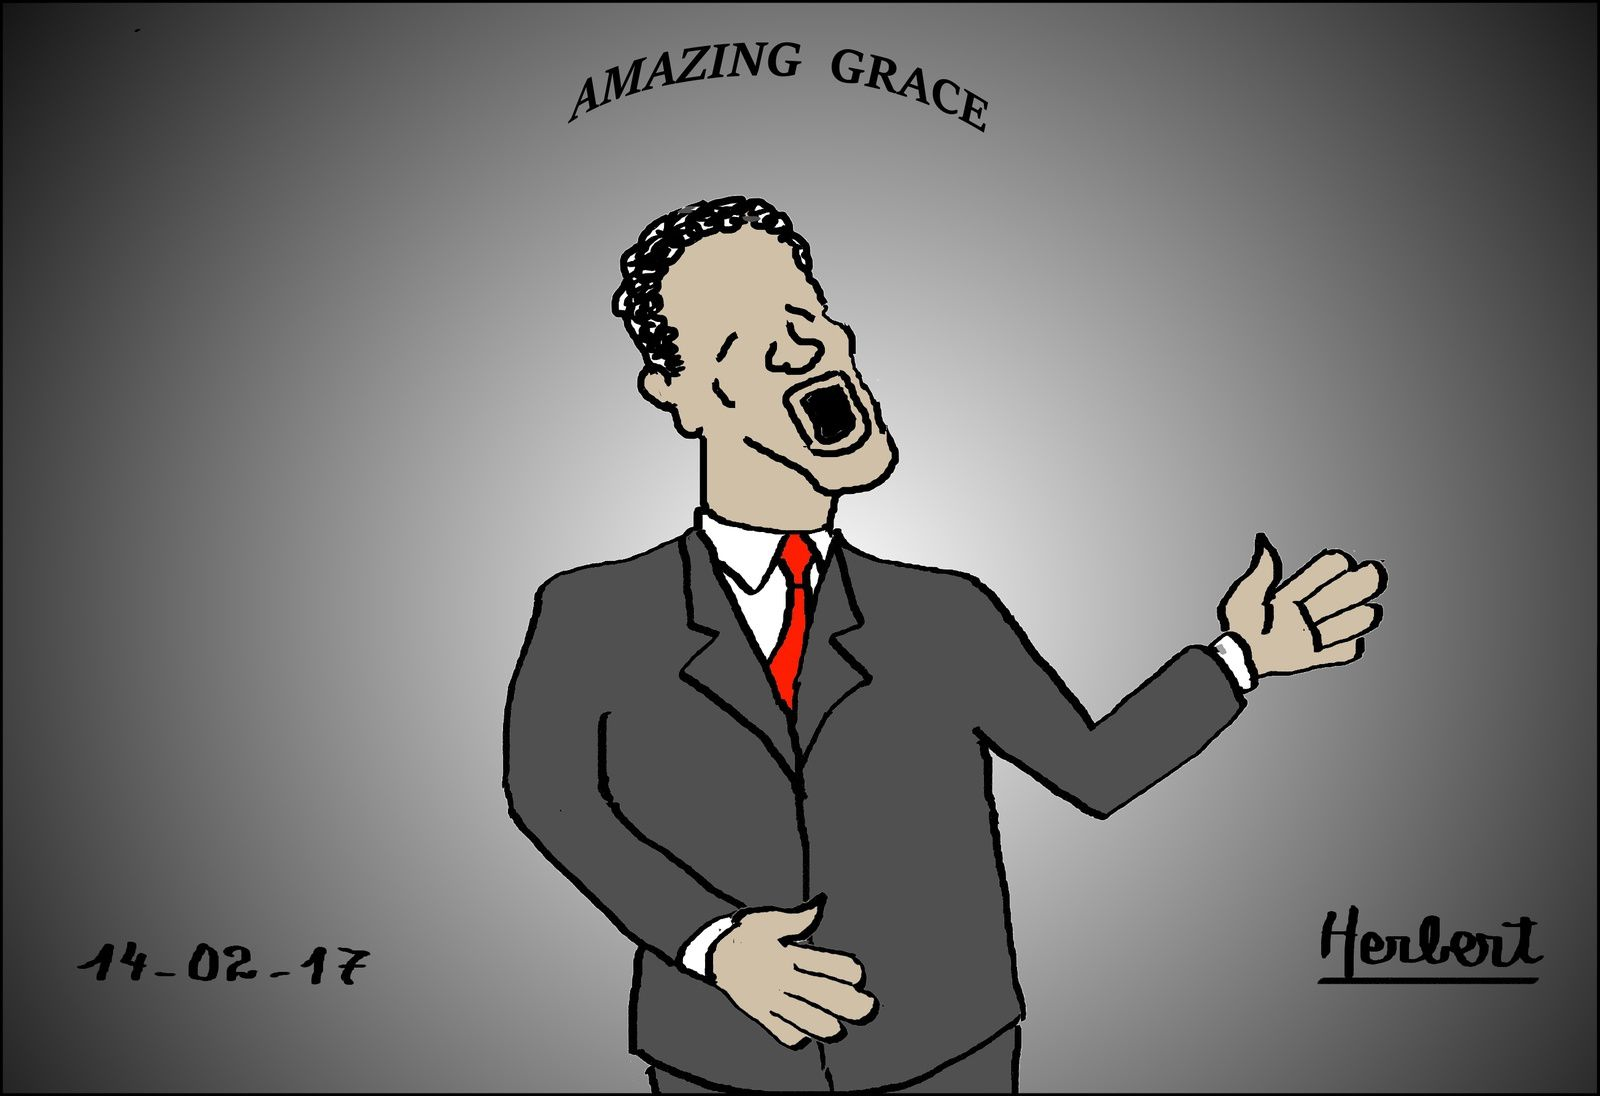 Amazing Grace par Obama et moi